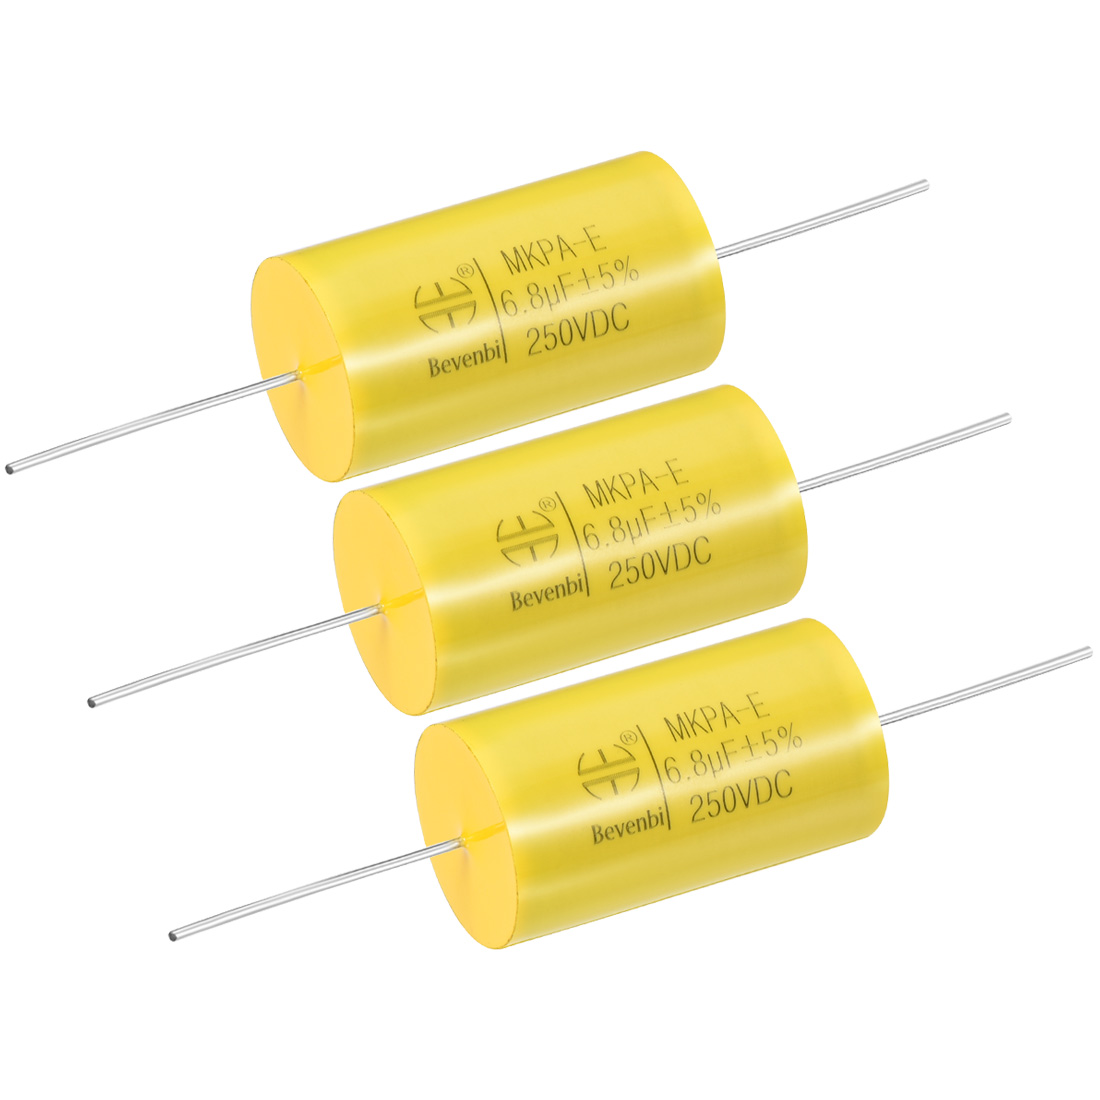 Film Capacitor 250V DC 6.8uF MKP-E Round Polypropylene Capacitors Yellow 3pcs